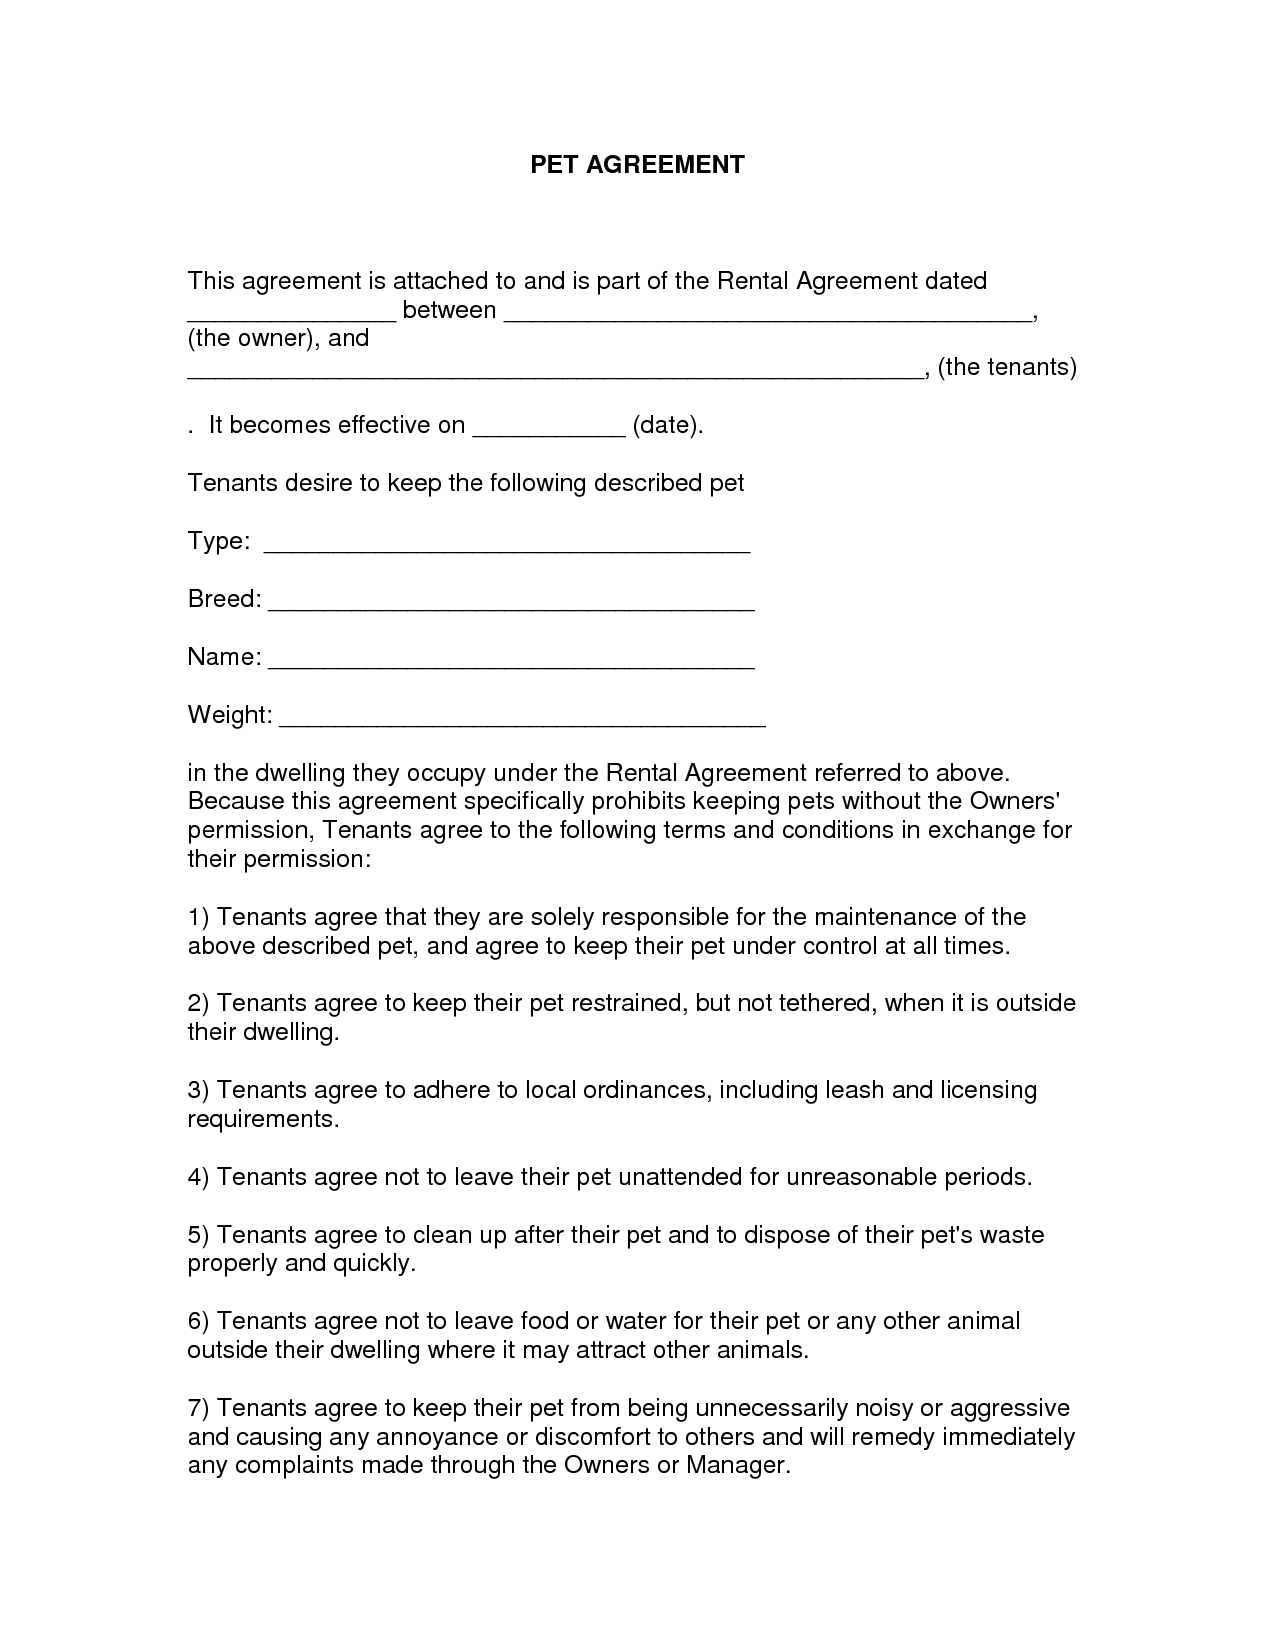 Free Printable Residential Lease Agreement Mi - 7.11.hus-Noorderpad.de • - Free Printable Rental Agreement